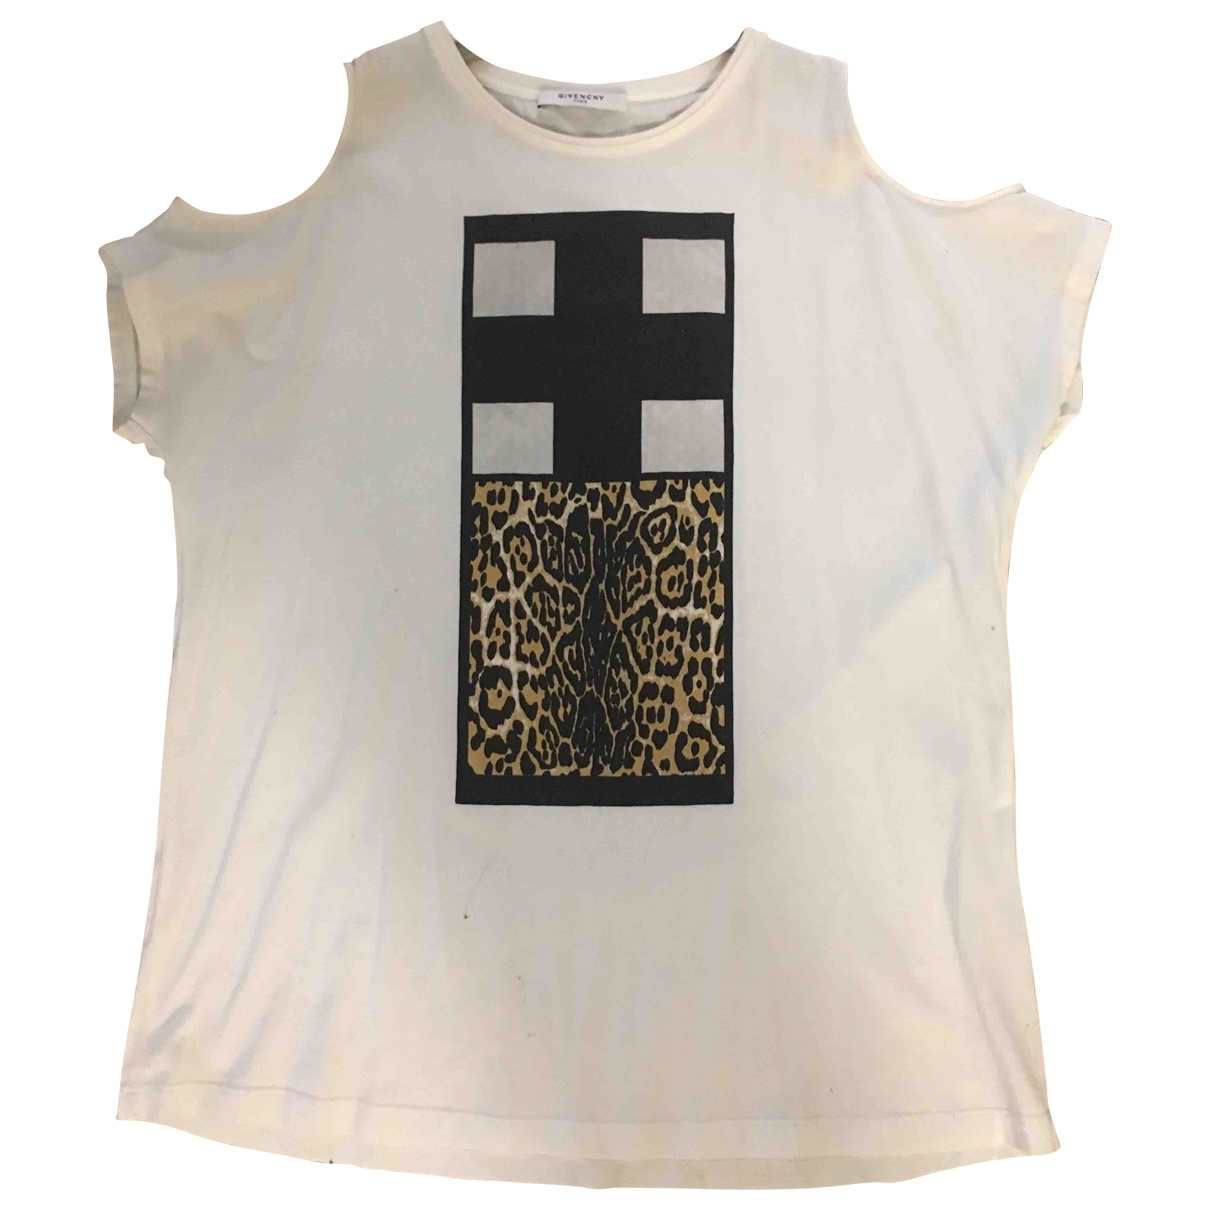 Givenchy \N White Cotton  top for Women 34 FR